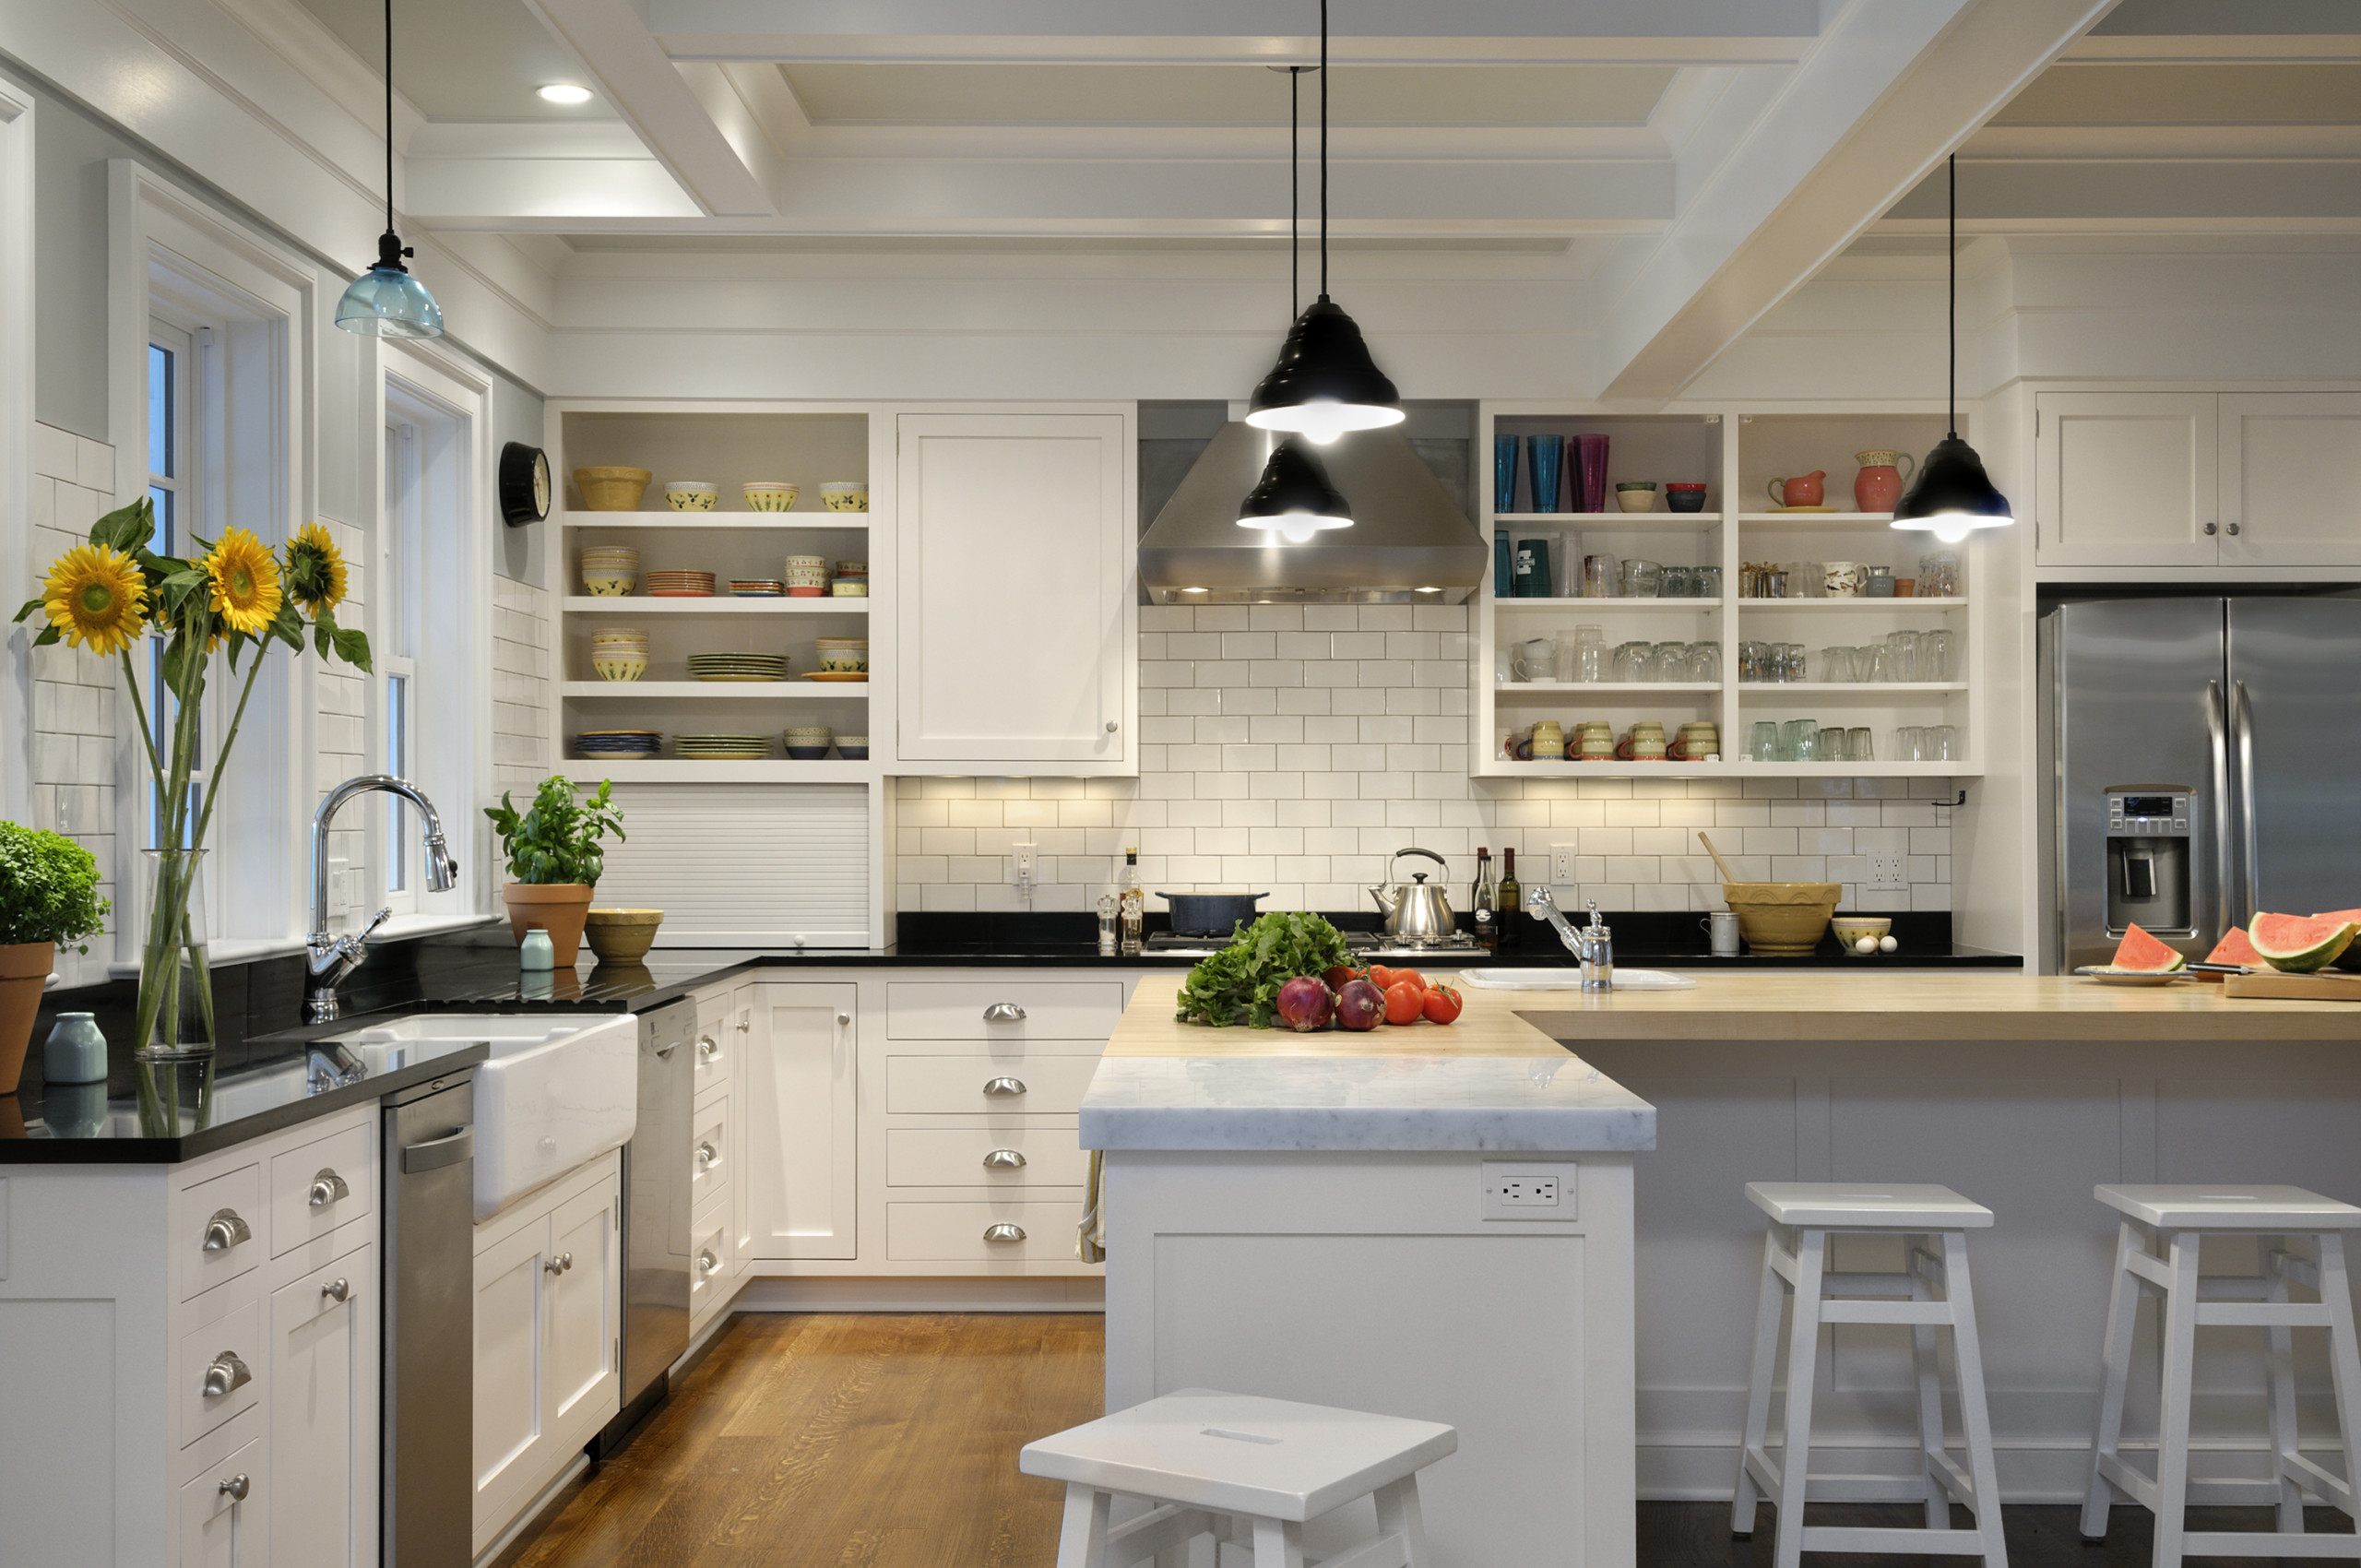 White Cabinets with White Appliances Farmhouse Kitchen Barstools Island Overlay Cabinetry